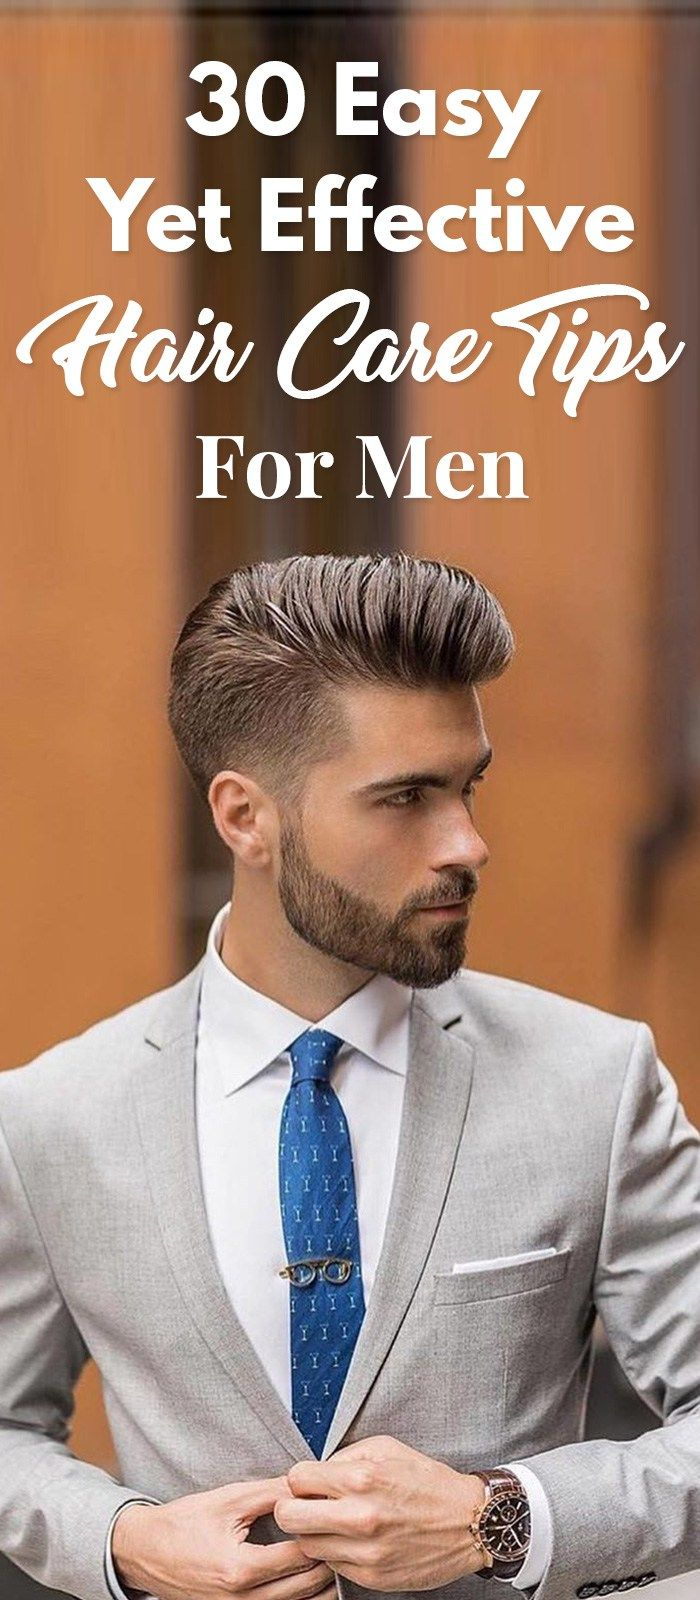 Best hair care tips for men to get healthy hair hair cuts bouncy